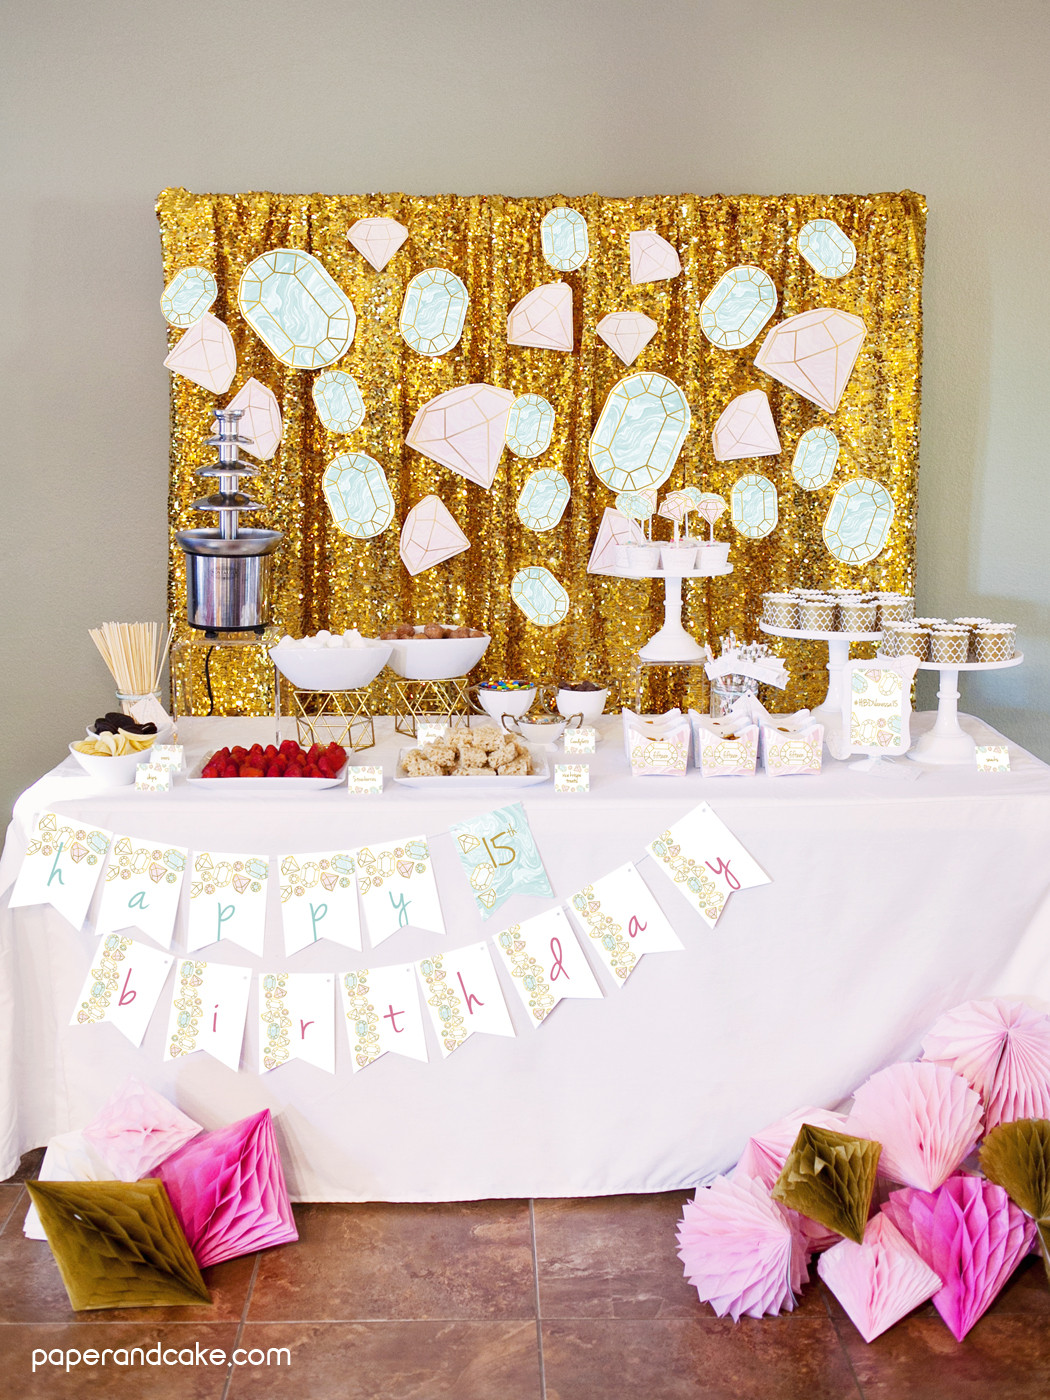 Best ideas about Birthday Decorations . Save or Pin Gemstone Birthday Party Ideas Paper and Cake Paper and Cake Now.